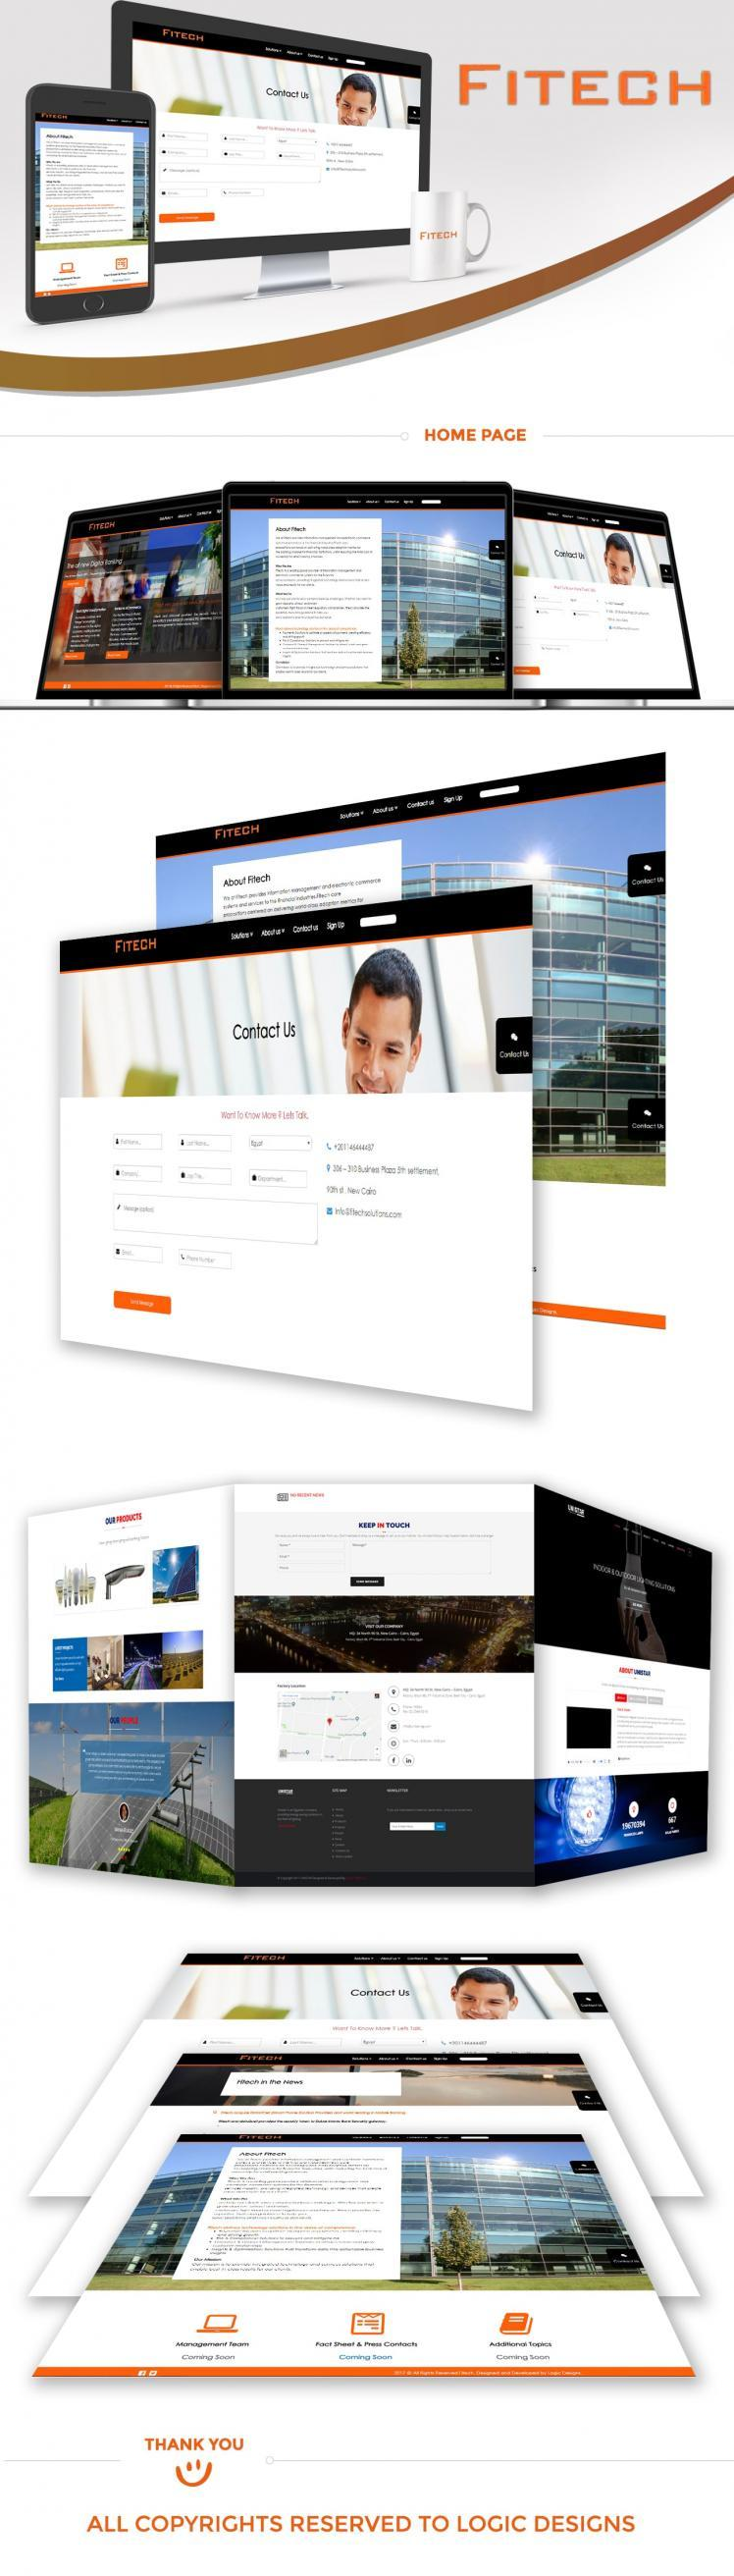 Fitech Solutions